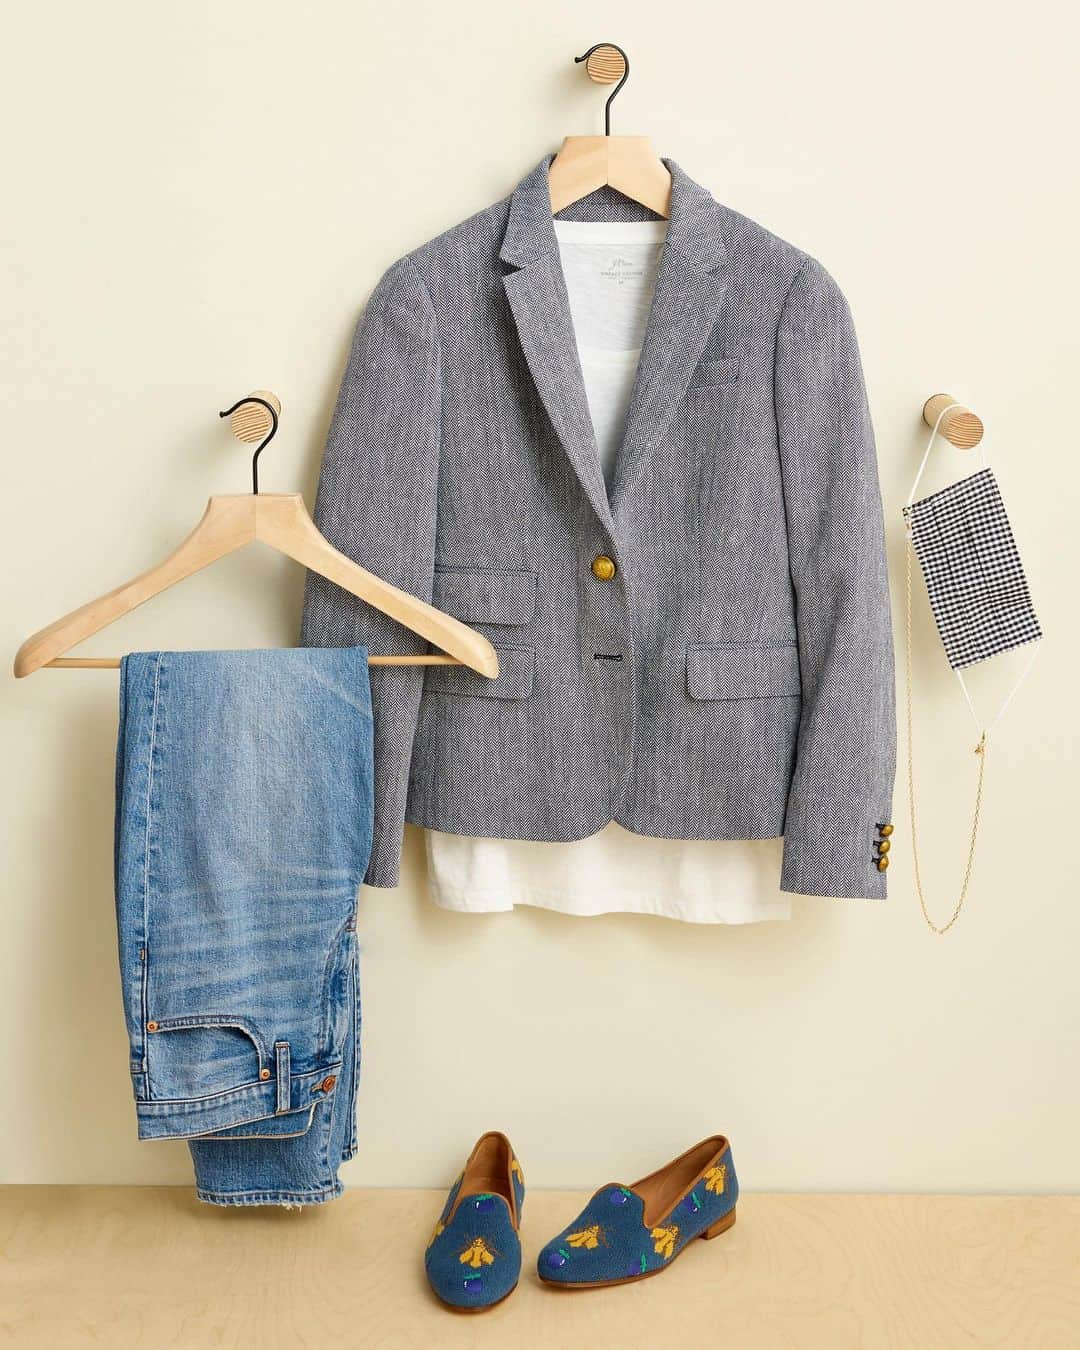 Blazer, tee, jeans, and loafers